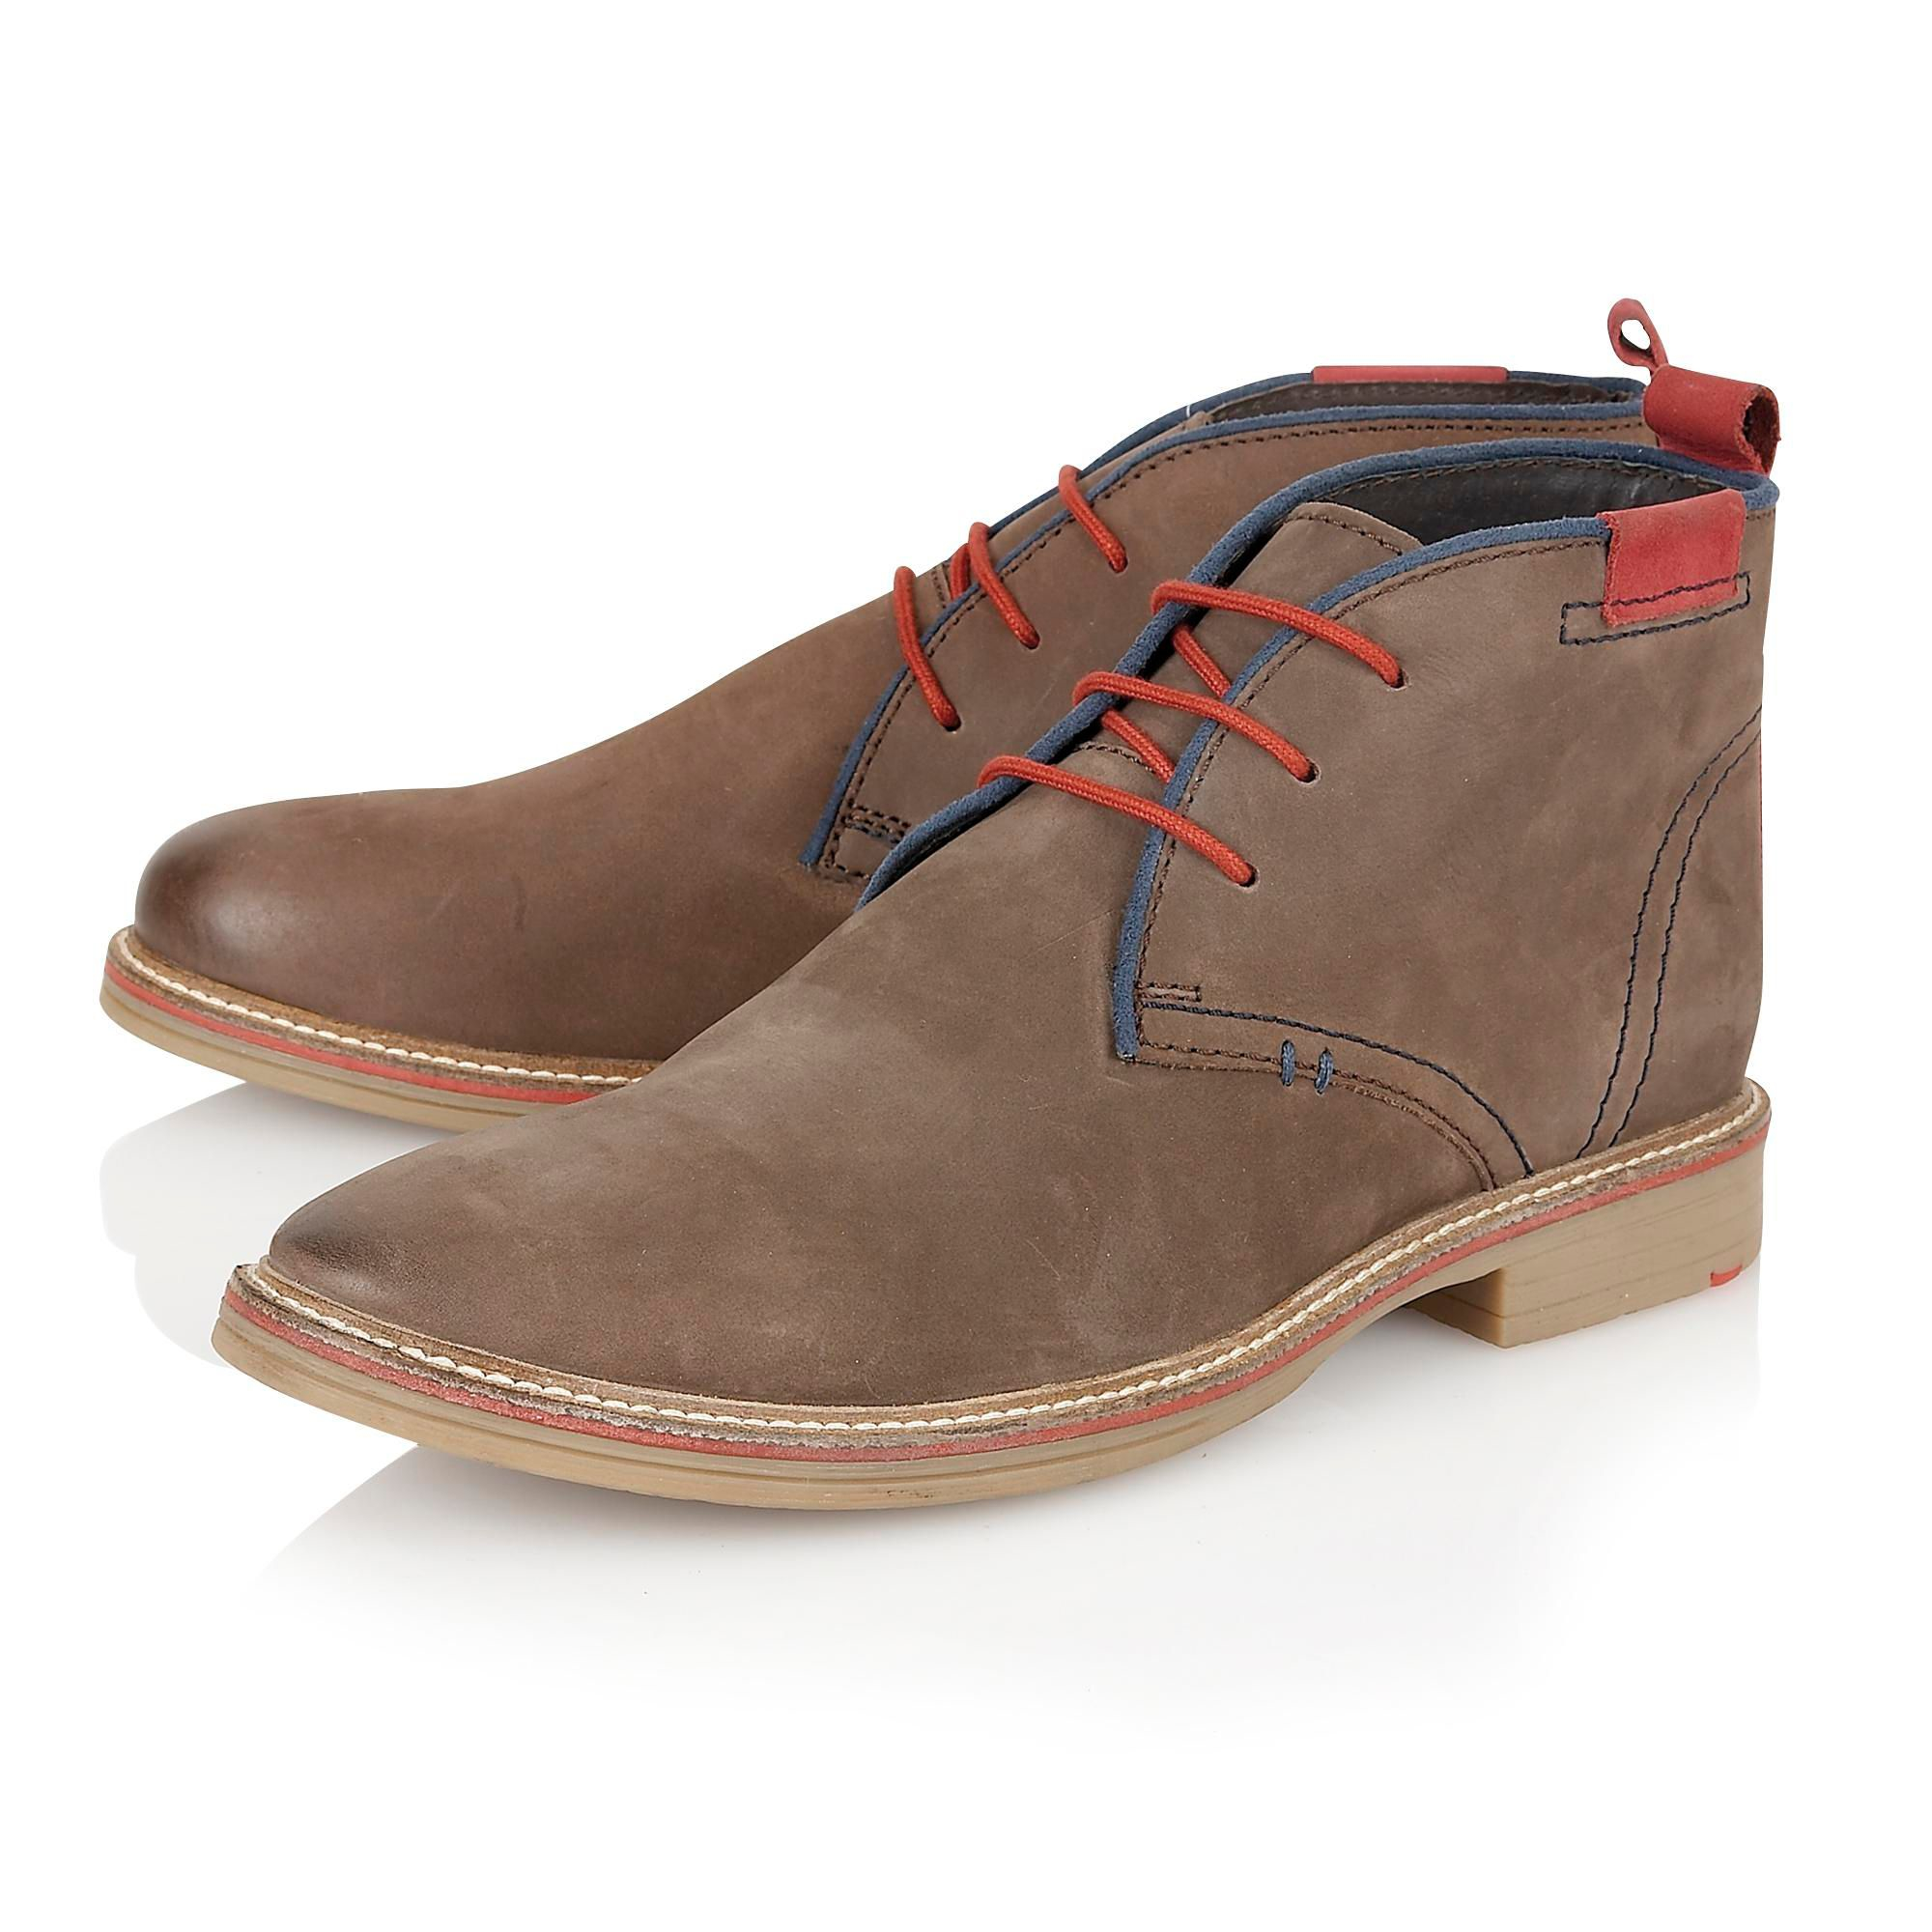 lotus holbeton lace up casual desert boots in brown for men lyst. Black Bedroom Furniture Sets. Home Design Ideas